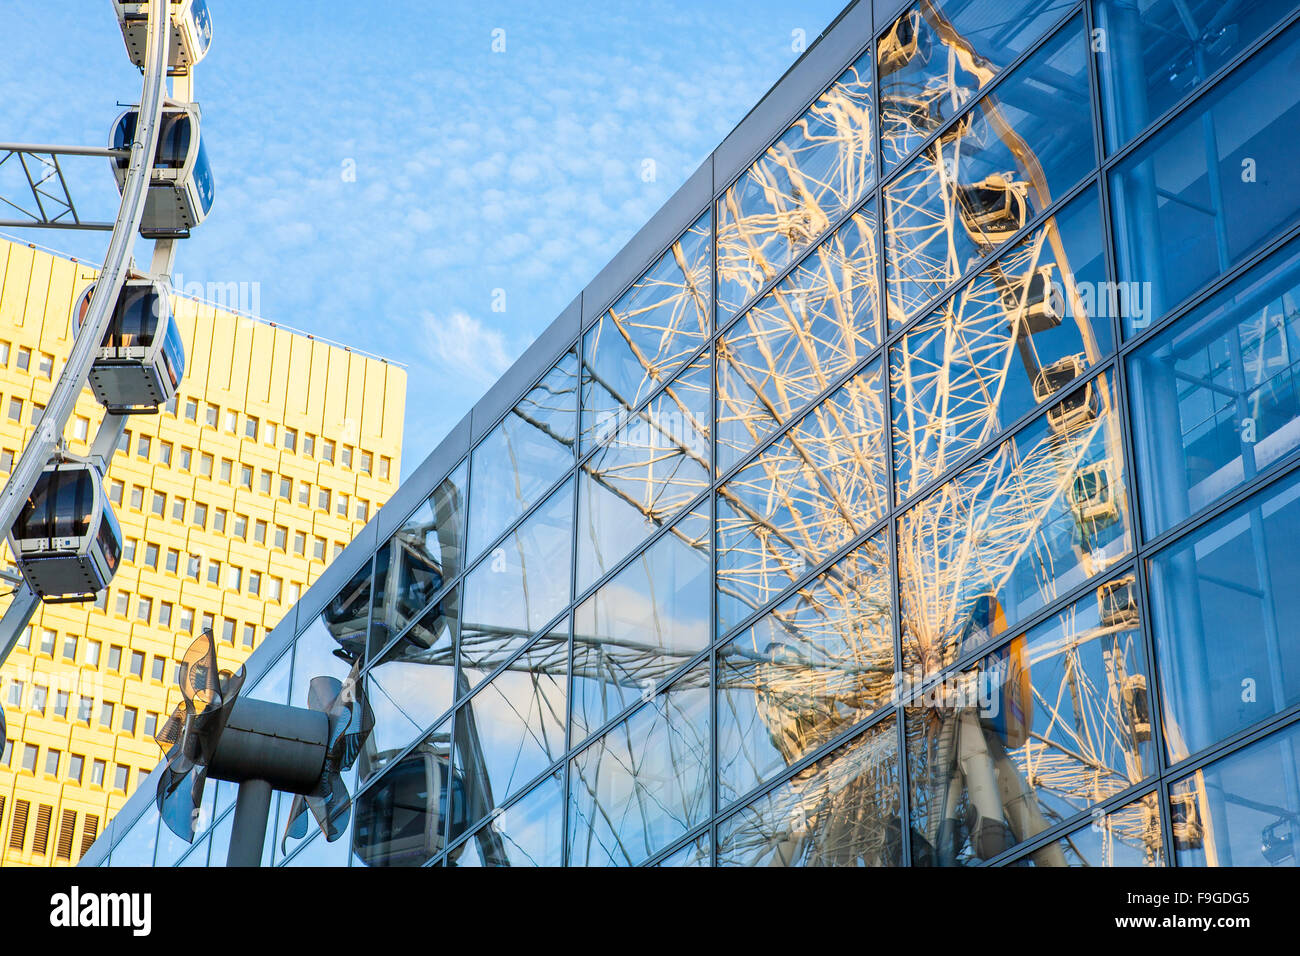 The Wheel of Manchester reflected in Selfridge's department store in Exchange Square, Manchester, England, UK - Stock Image